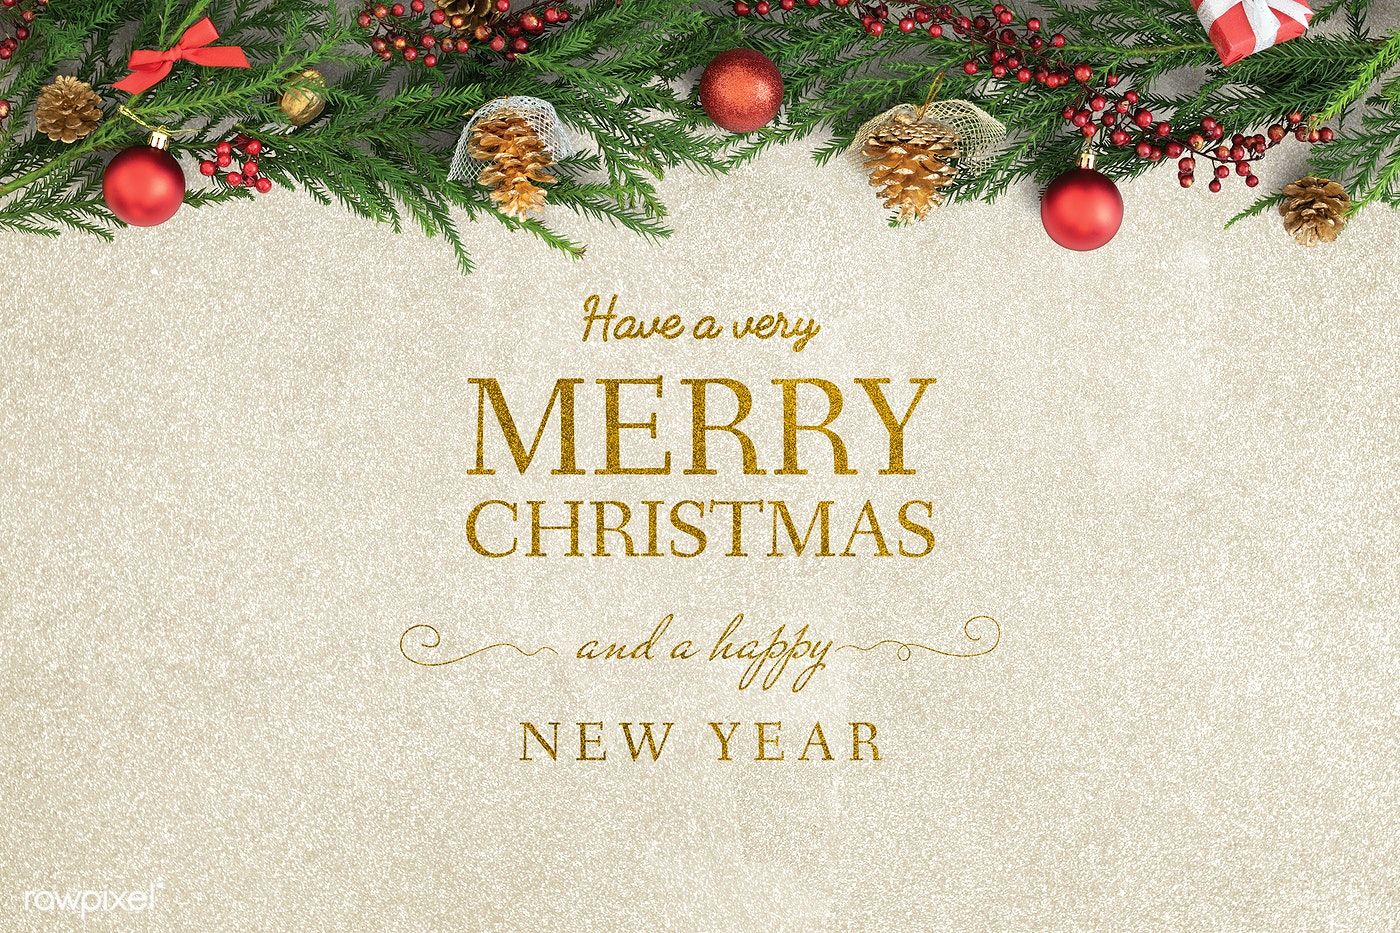 Download Premium Psd Of Merry Christmas And Happy New Year Greeting Card Merry Christmas And Happy New Year Happy New Year Greetings New Year Greeting Cards